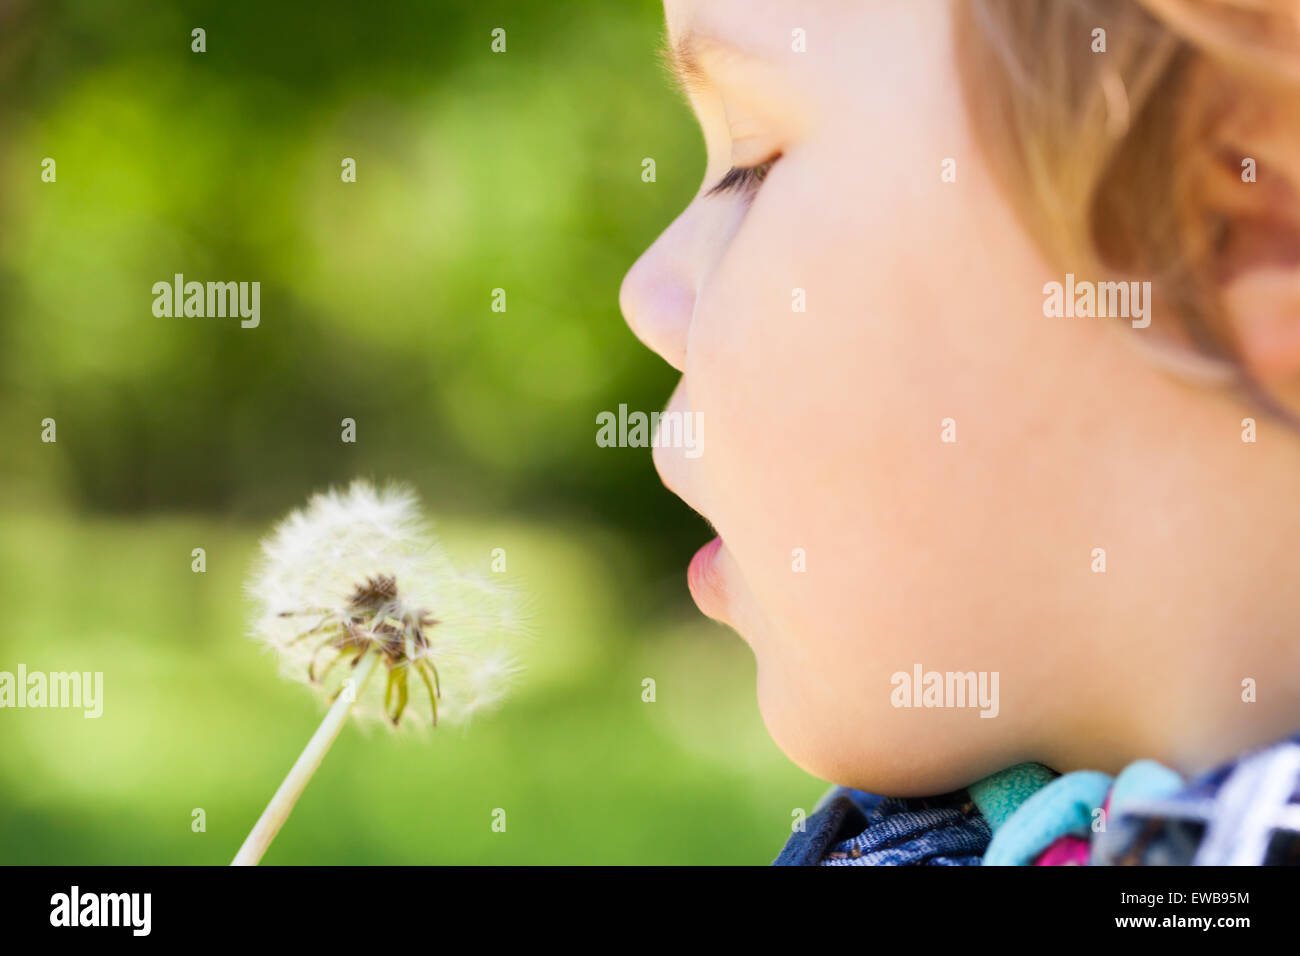 Caucasian blond baby girl and dandelion flower in a park, selective focus on lips - Stock Image